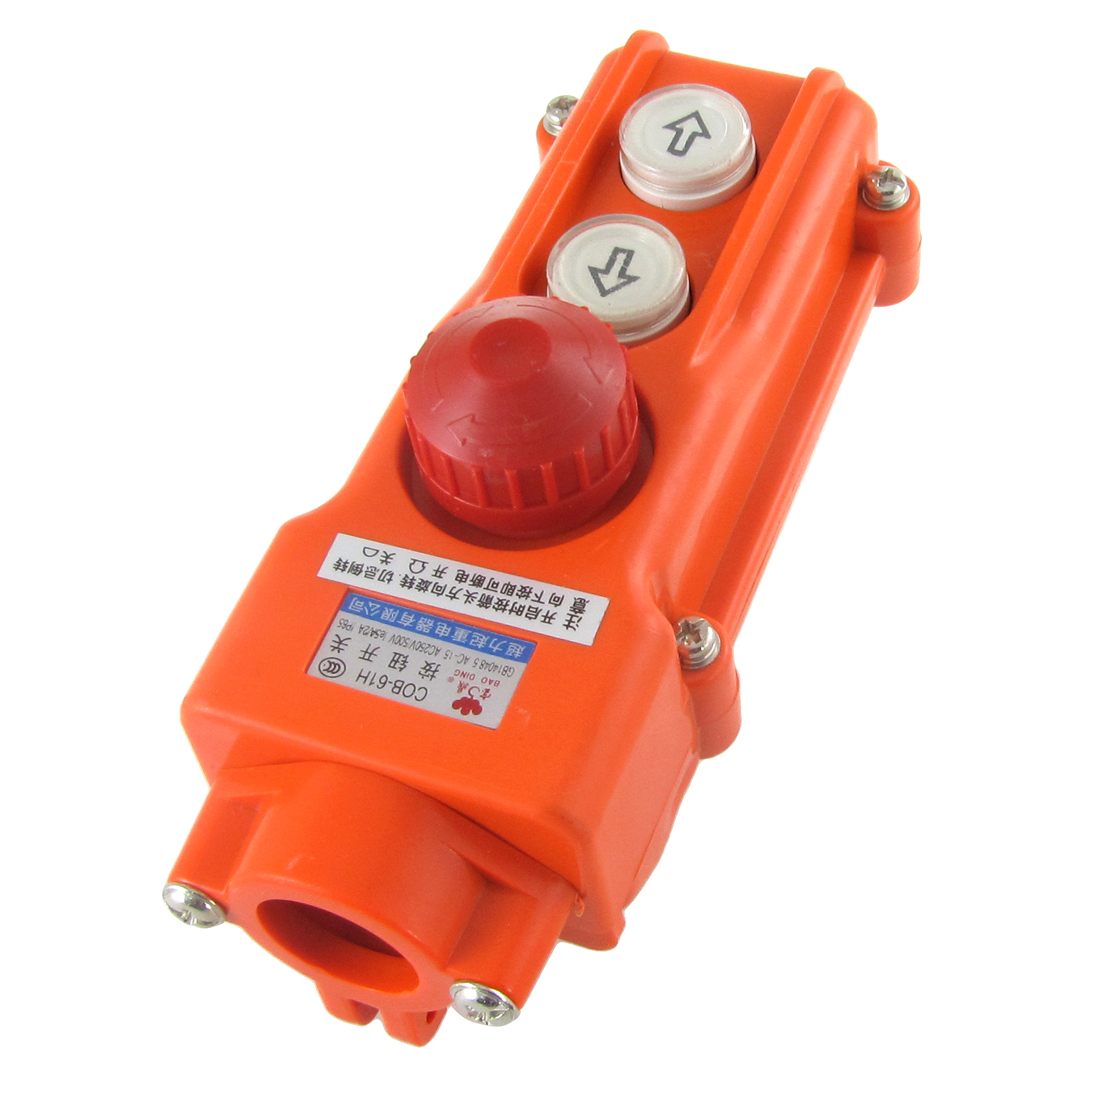 Rainproof Hoist Crane Pushbutton Switch Up Down w Emergency Stop 250V 5A 500V 2A